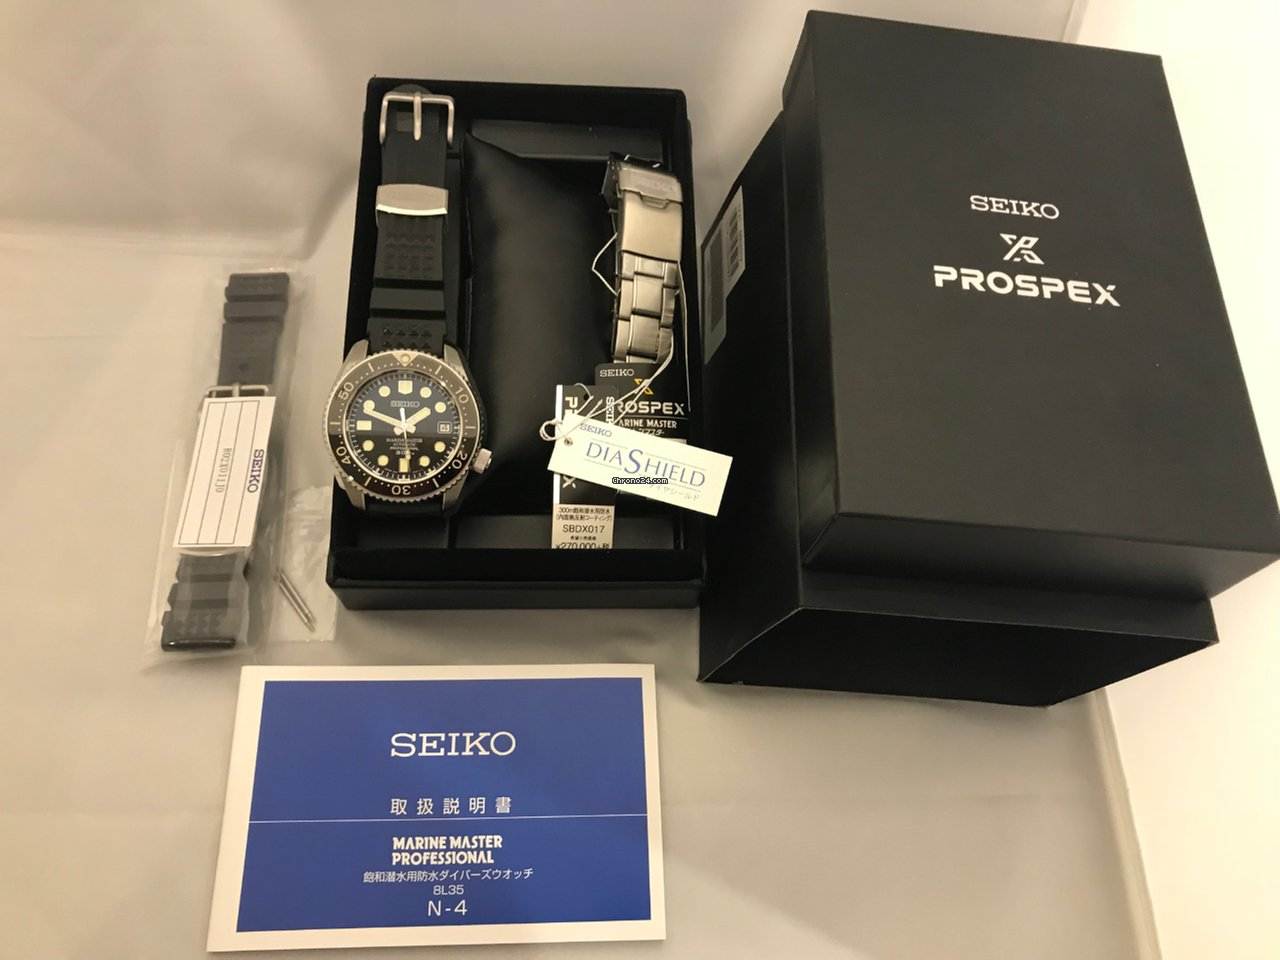 Seiko Marinemaster 300 For 2 575 For Sale From A Trusted